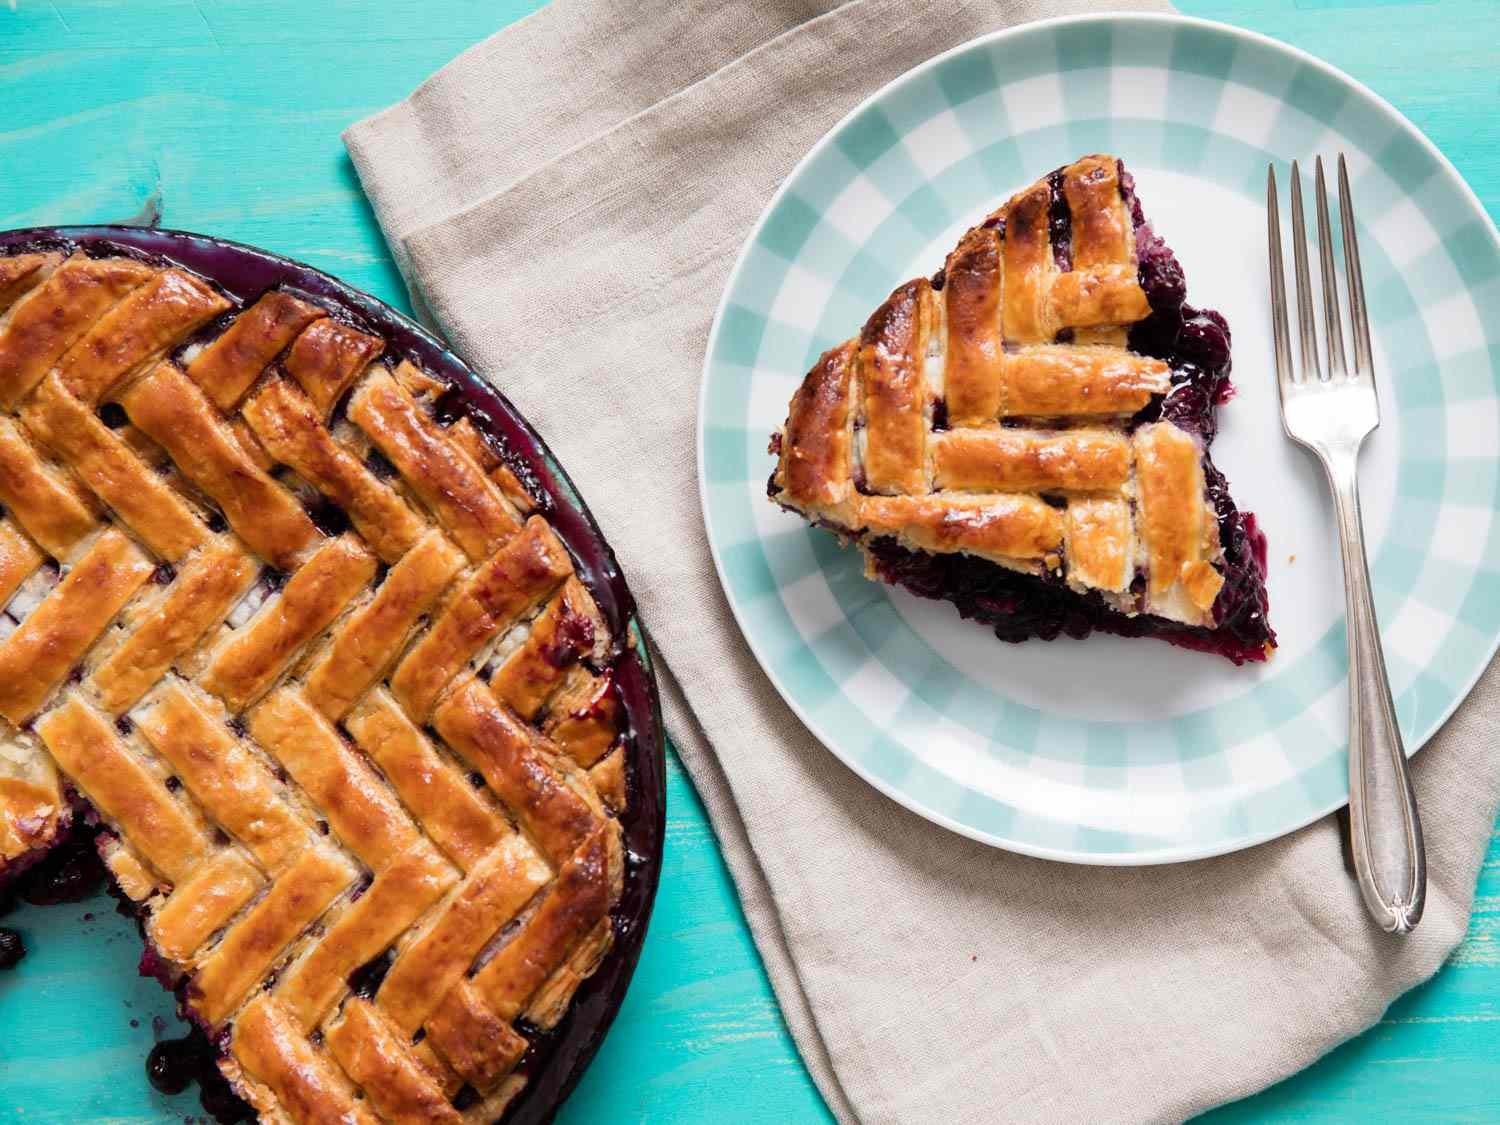 A slice of herringbone lattice–topped blueberry pie on a plaid-rimmed plate with a fork, next to the rest of the pie